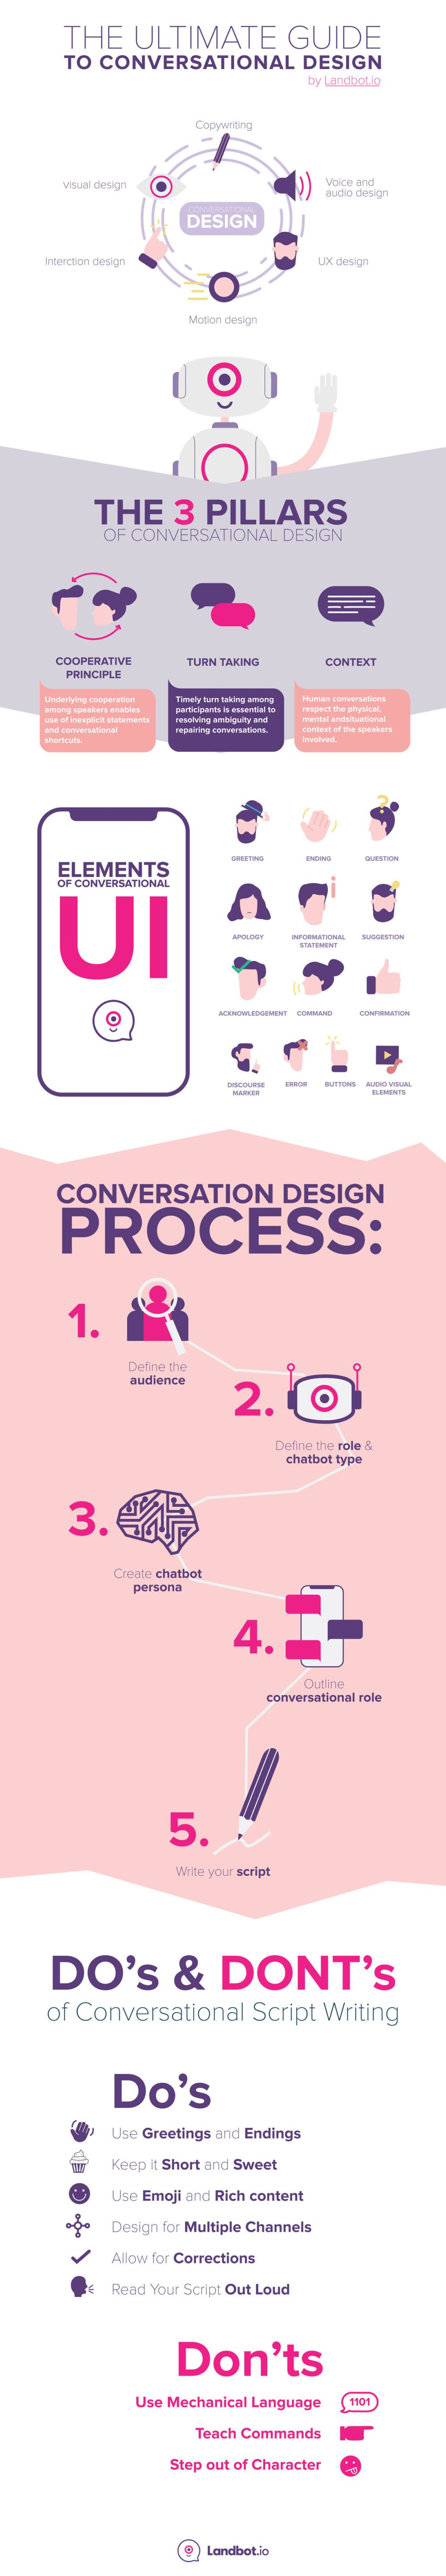 guide to conversational design infographic